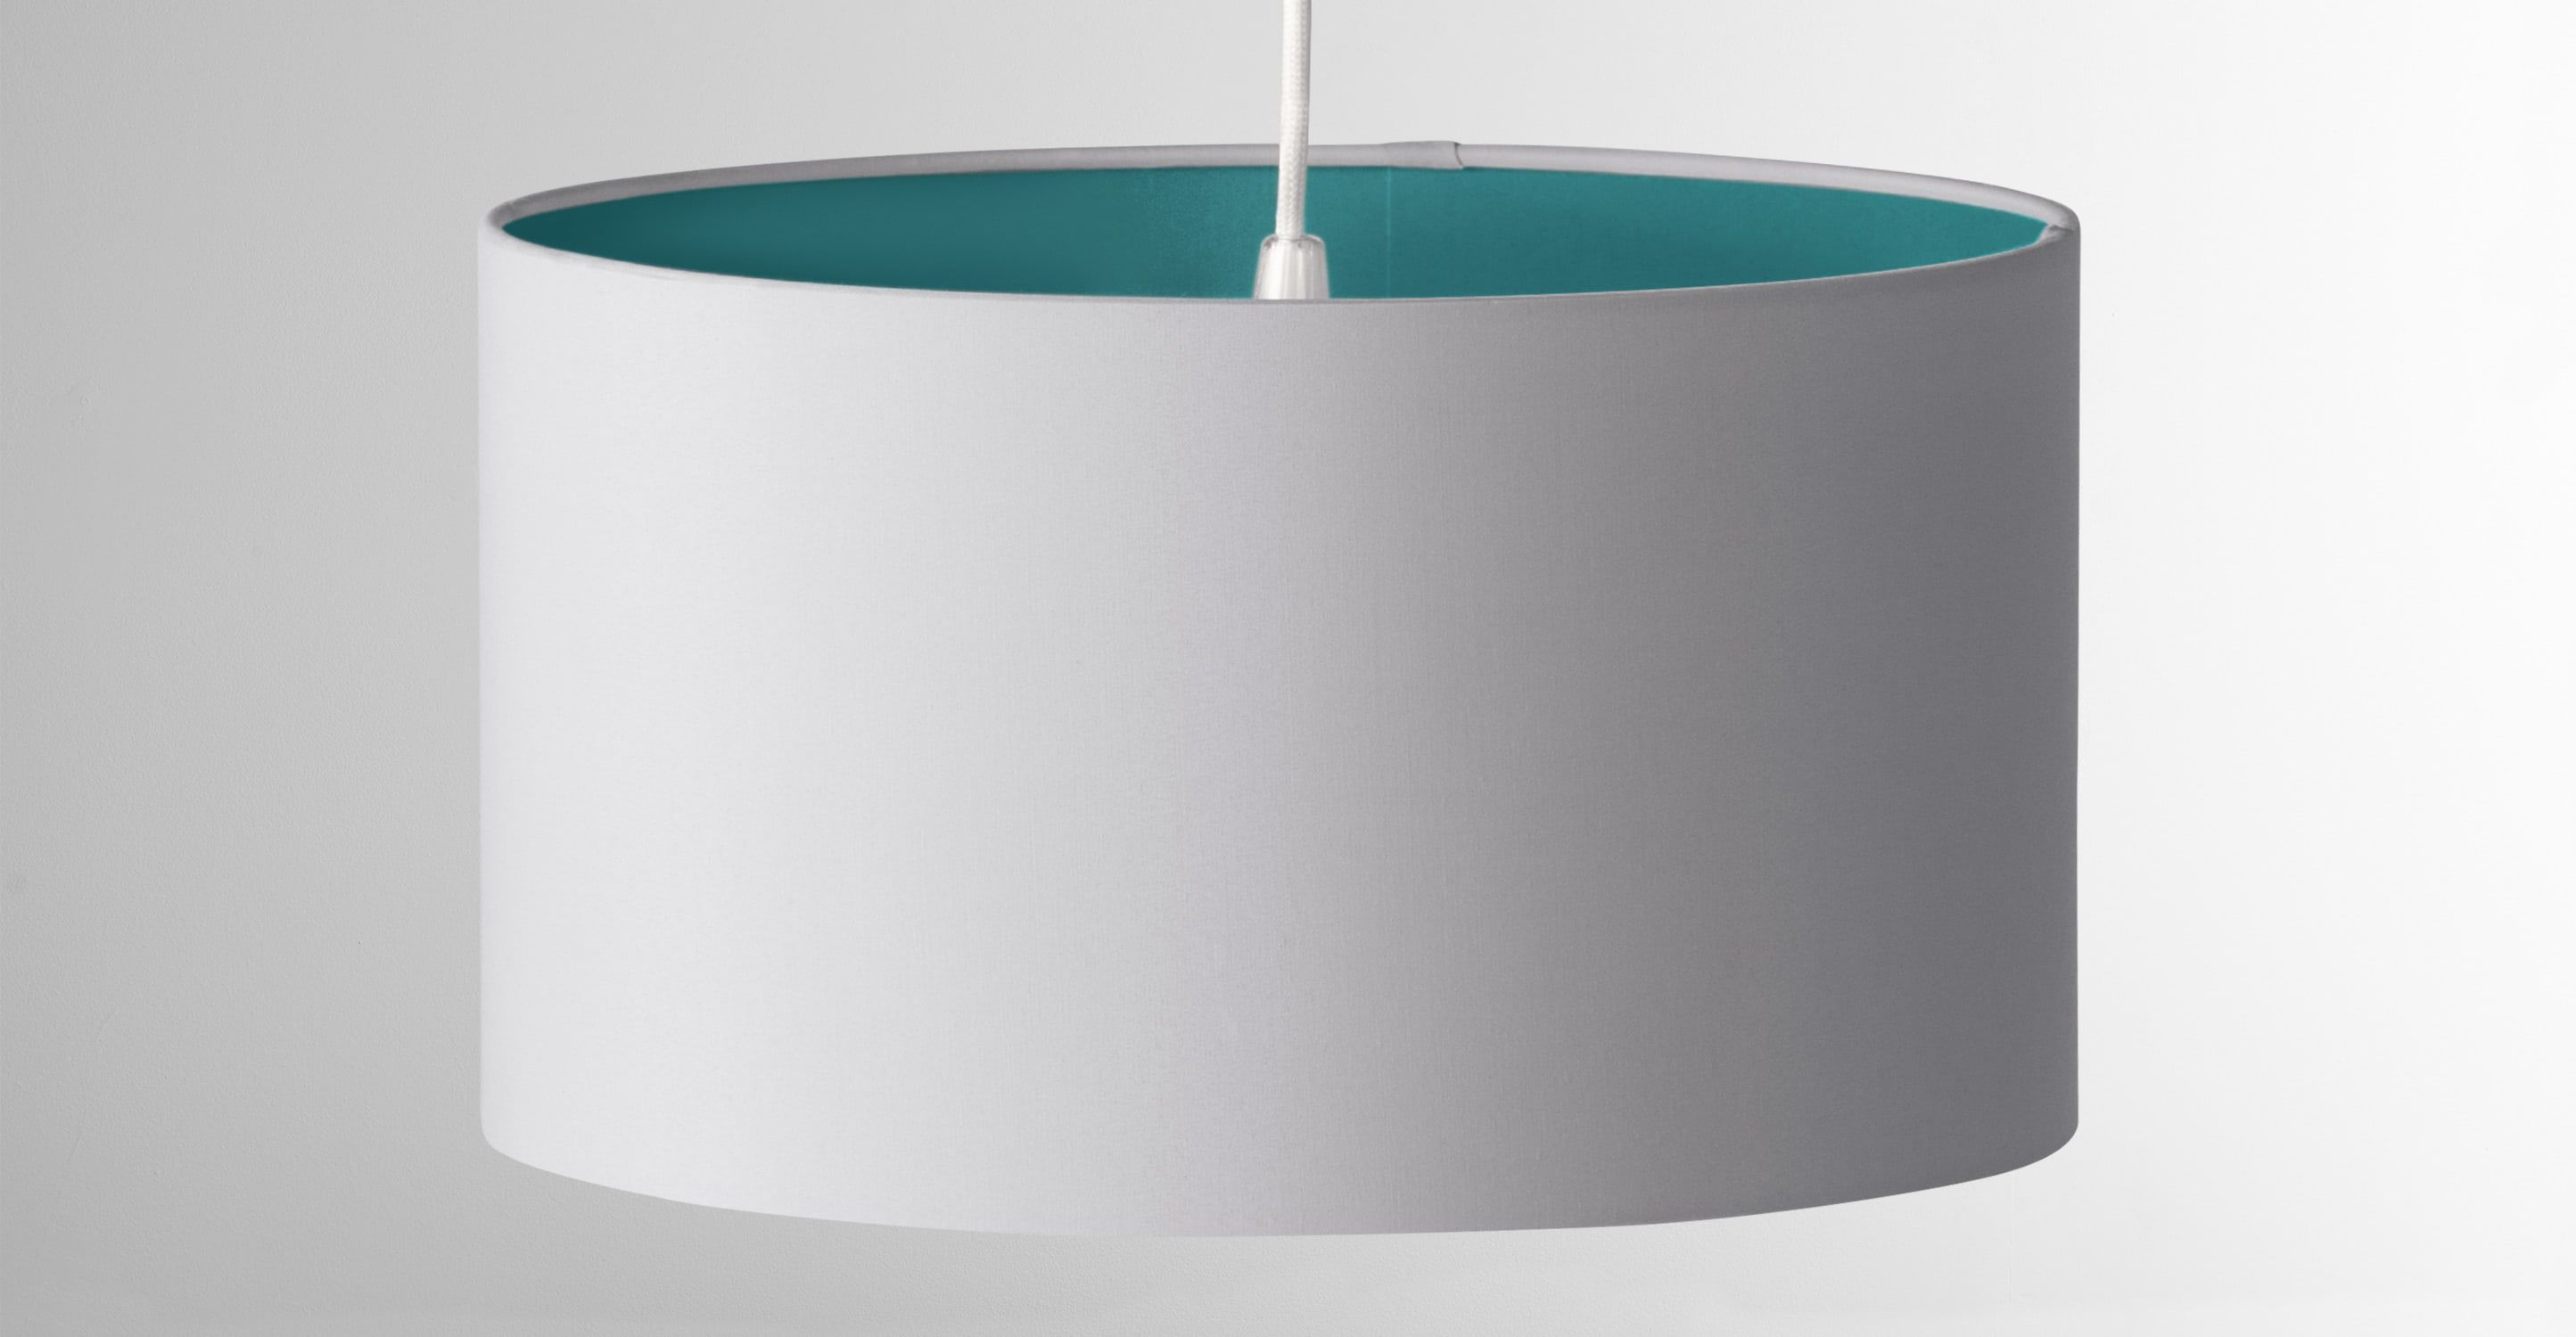 made small shade, teal & grey. express delivery. cotton. may lamp